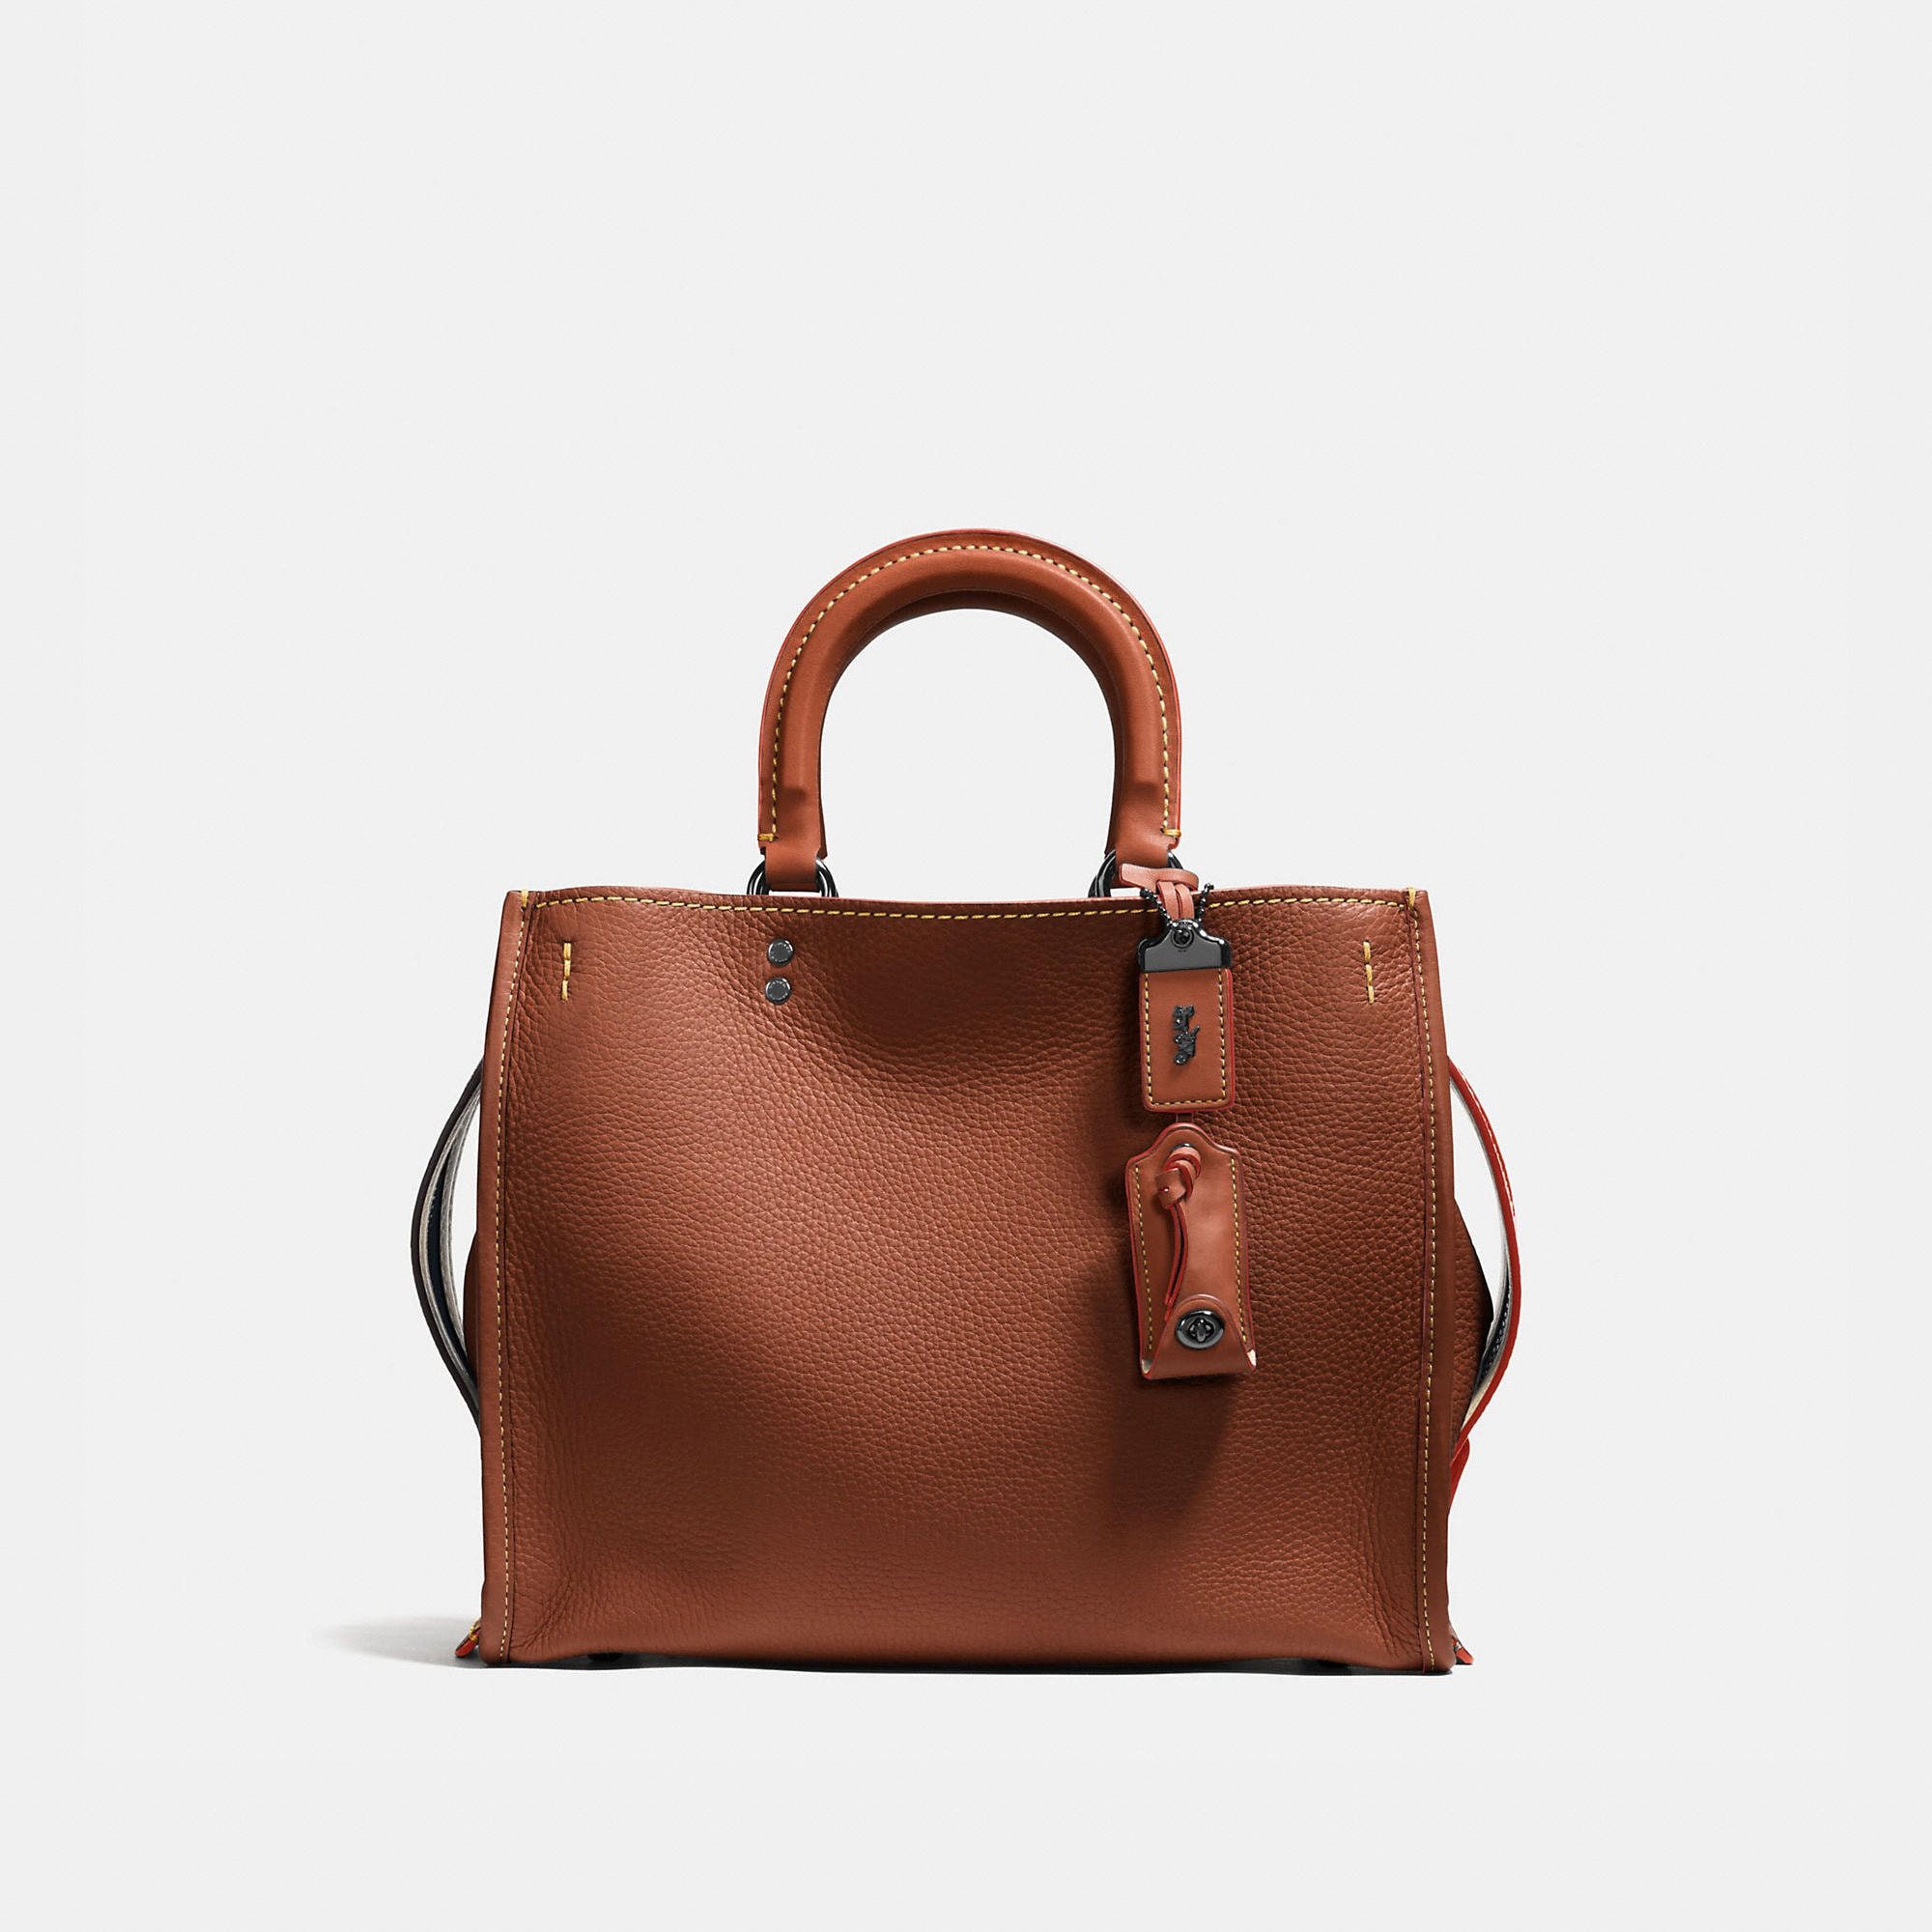 Coach 1941 Rogue Bag In Glovetanned Pebble Leather